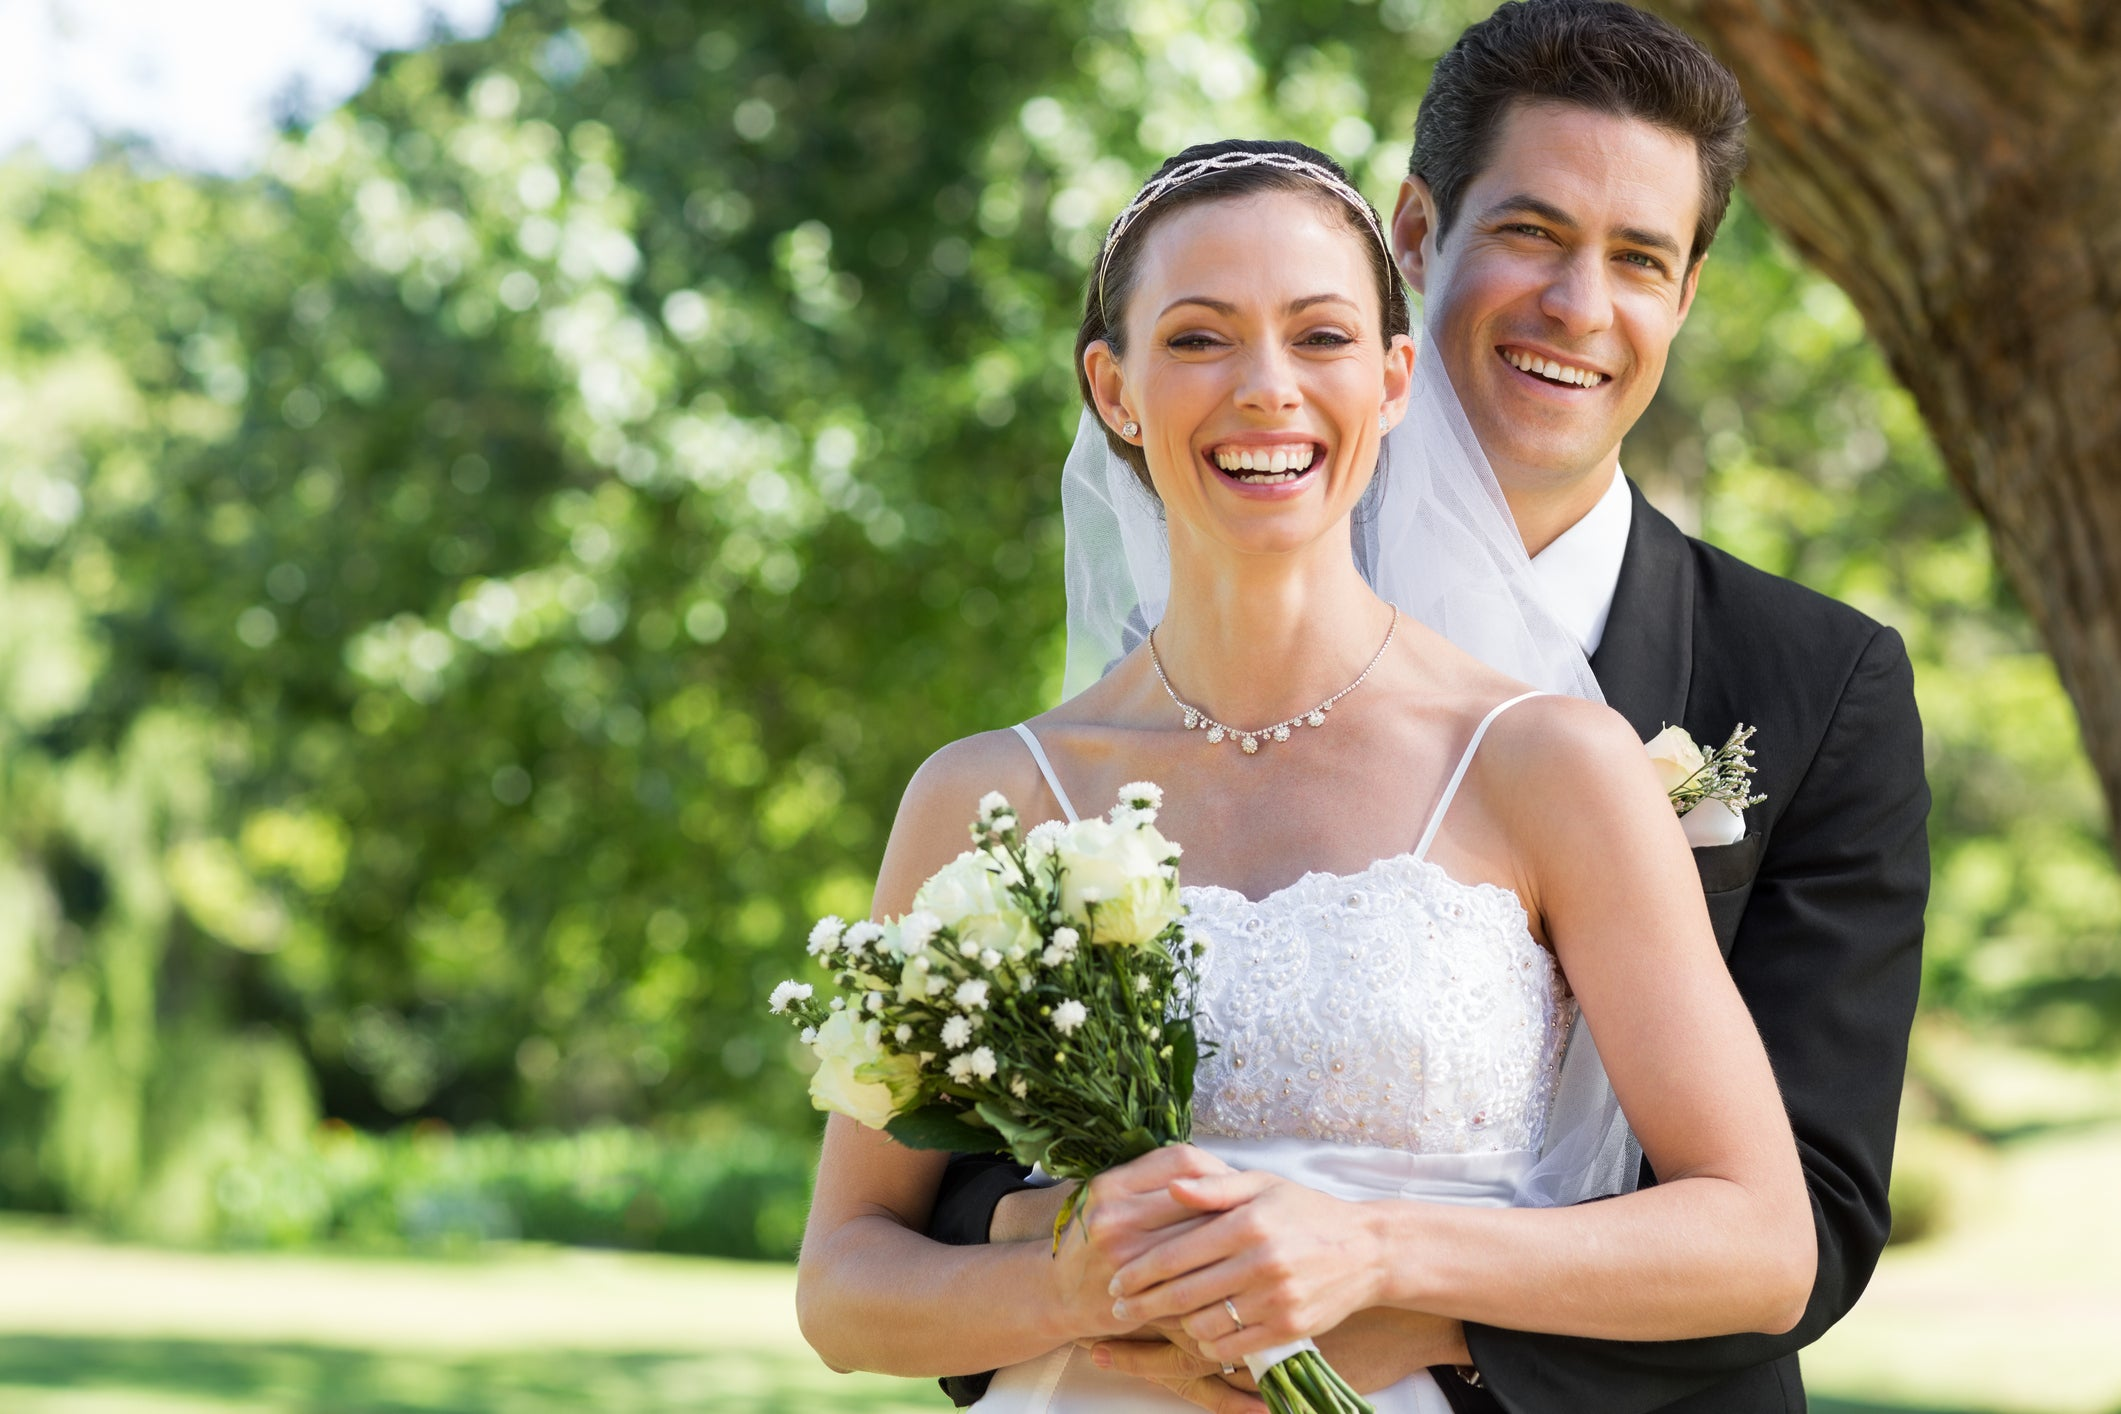 74% of Soon-to-Be Married Couples Are Making This Major ...